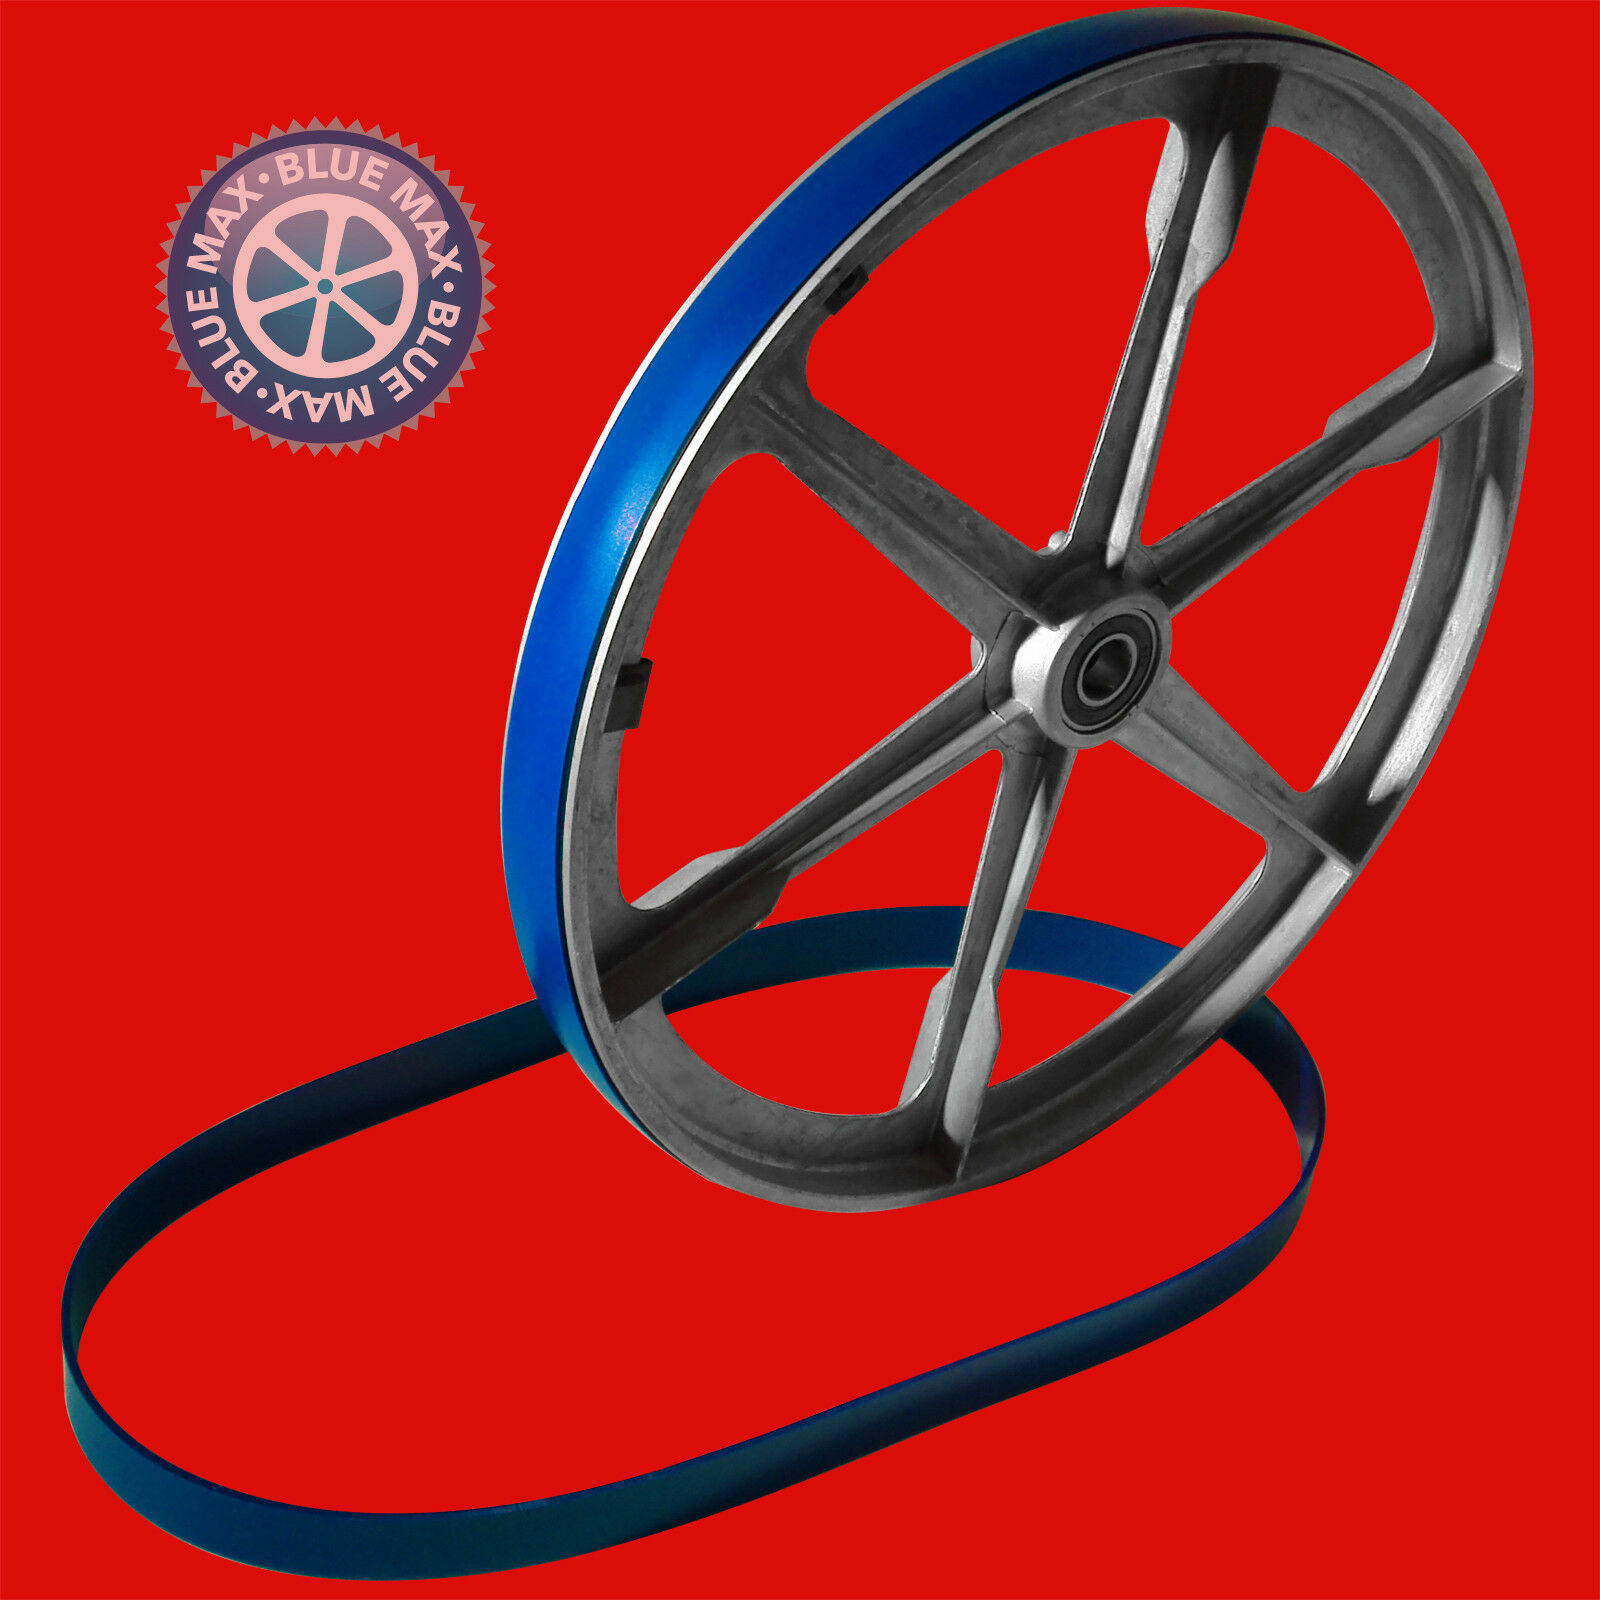 3 Blau MAX ULTRA DUTY URETHANE BAND SAW TIRES FOR DOALL 36-3 BAND SAW